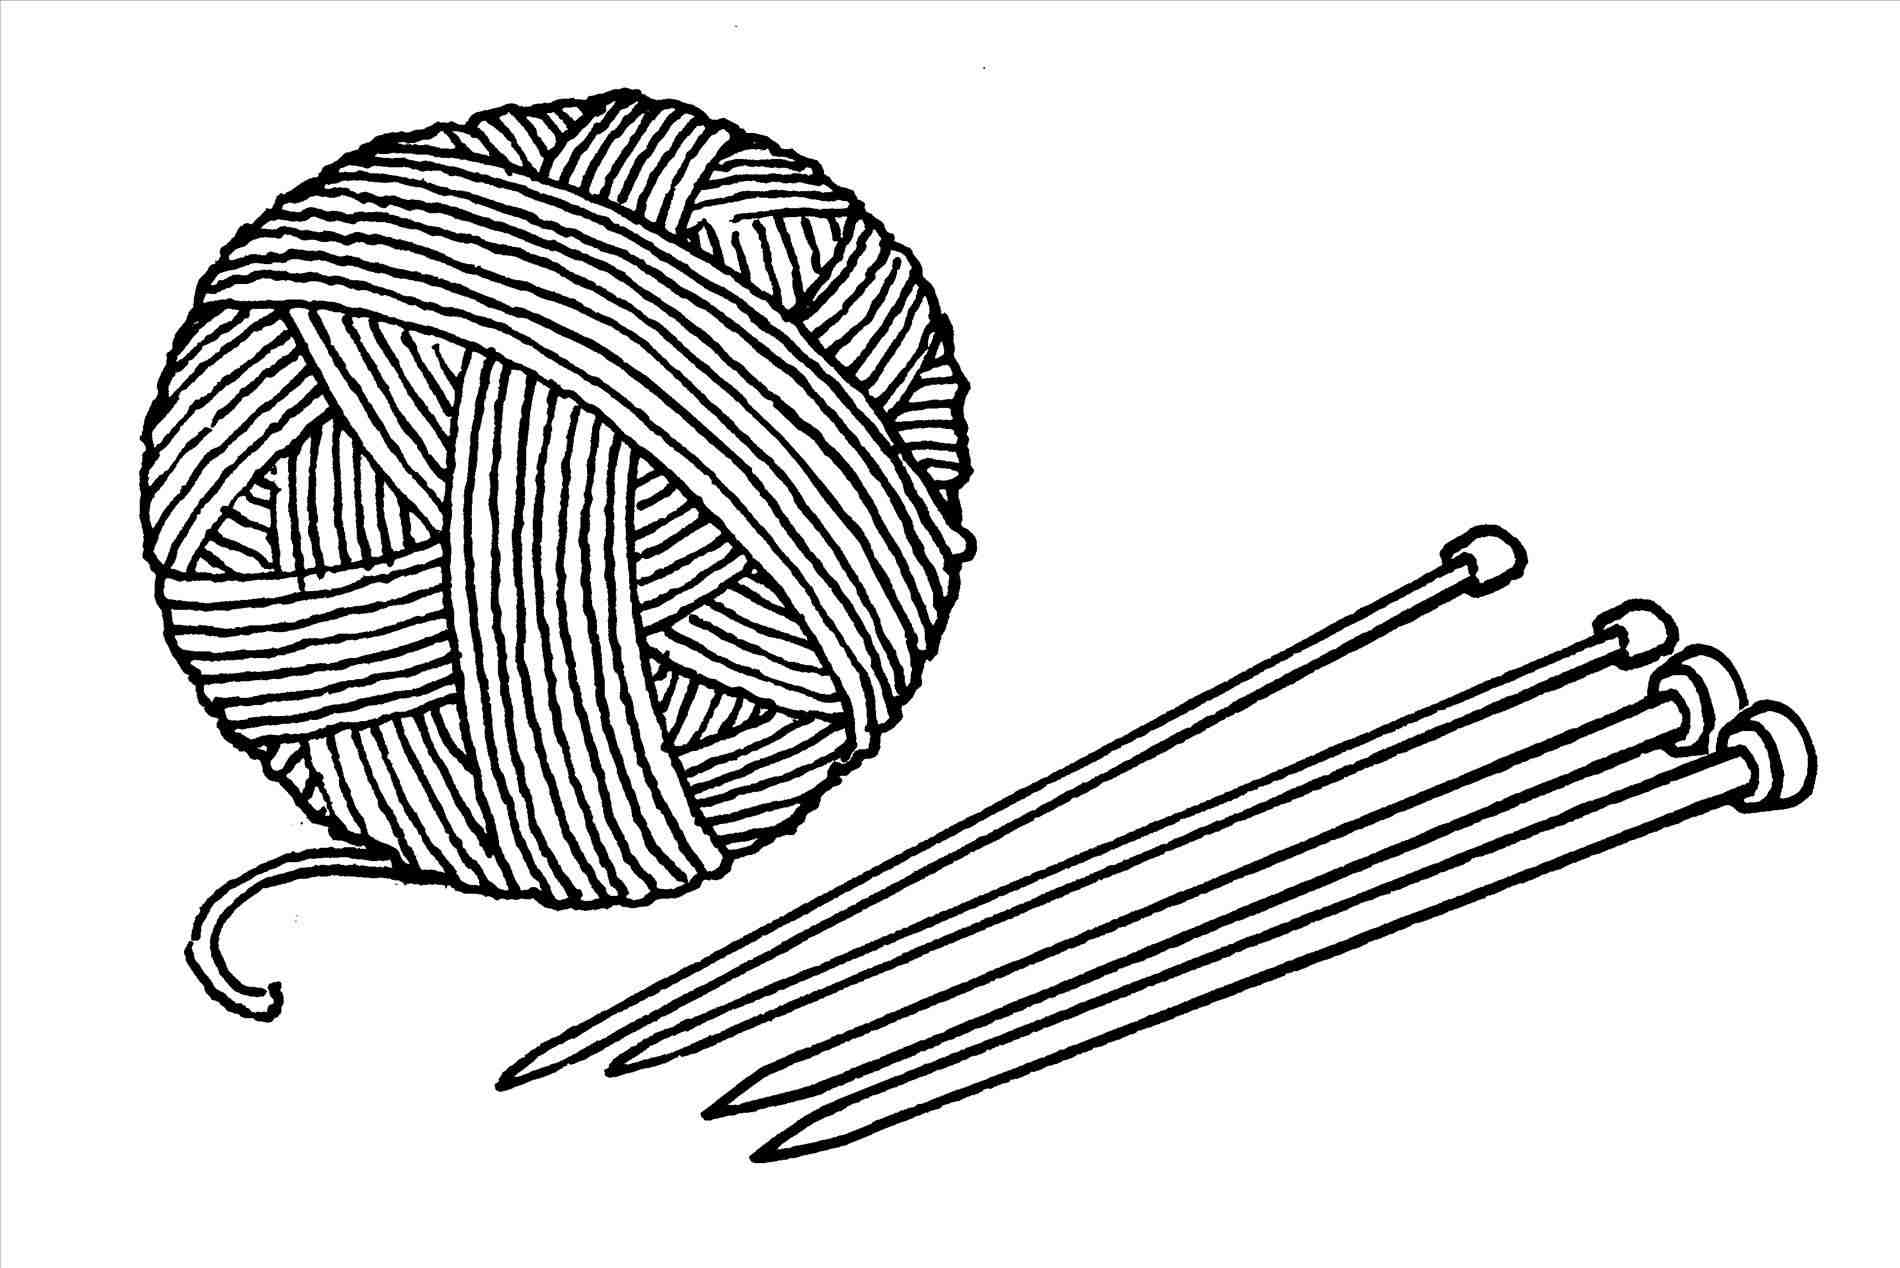 Knitting clipart sketch. Needles drawing at paintingvalley